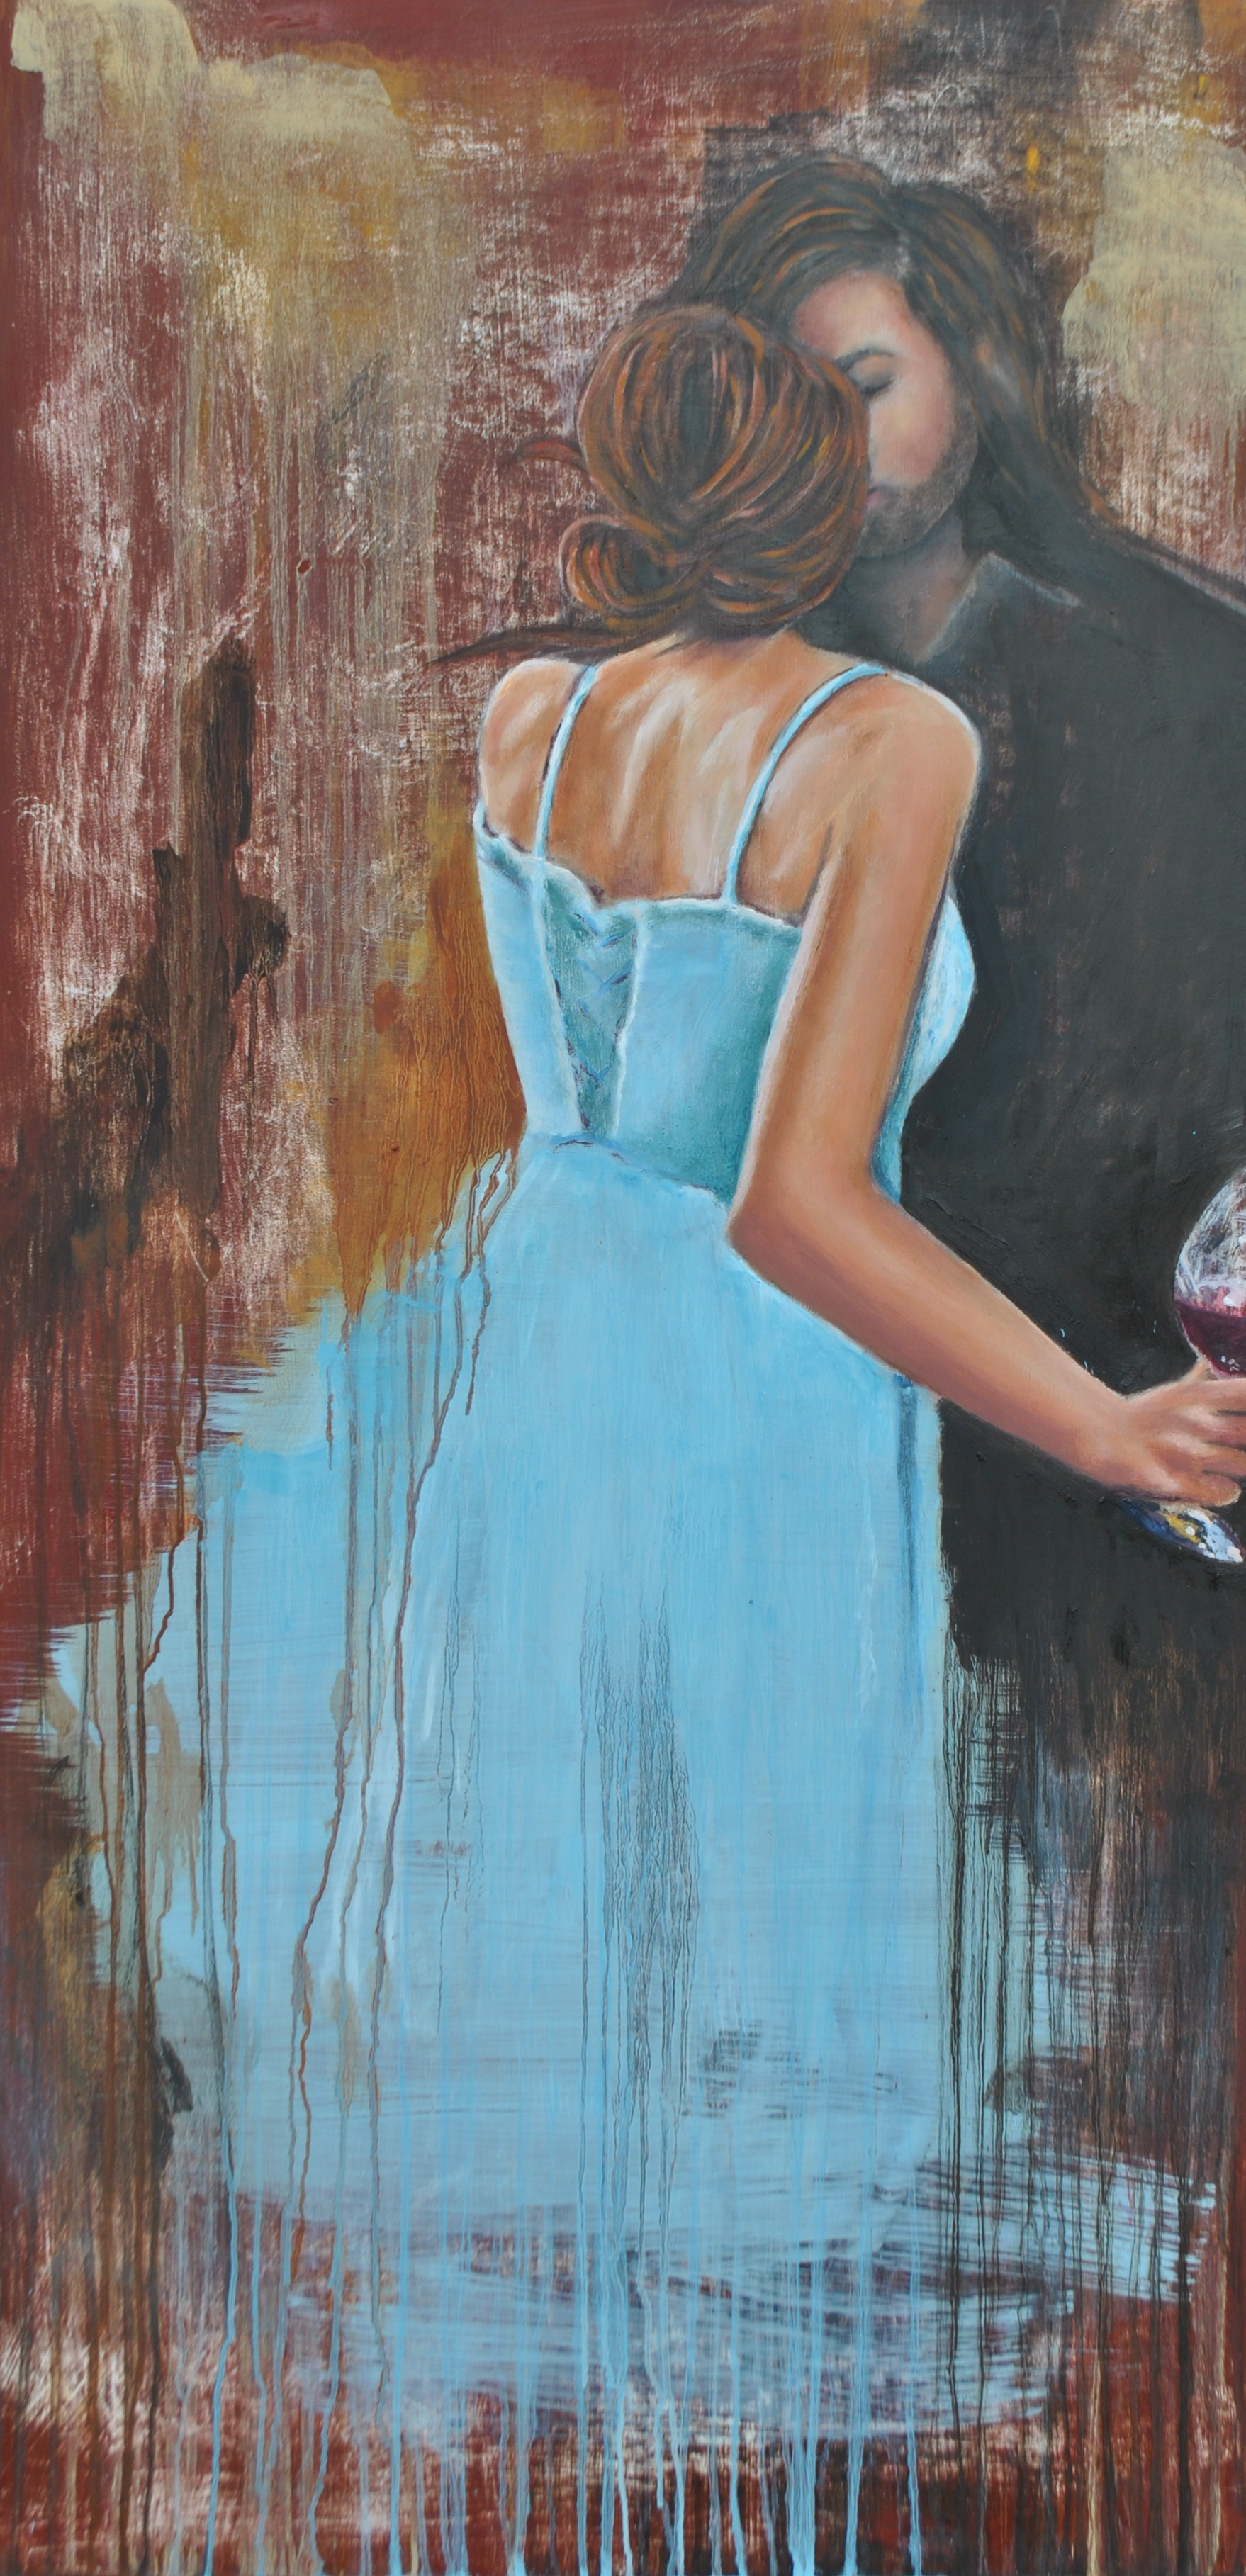 Wedding at Cana 24x48 Oil On Wood Available, Prints available